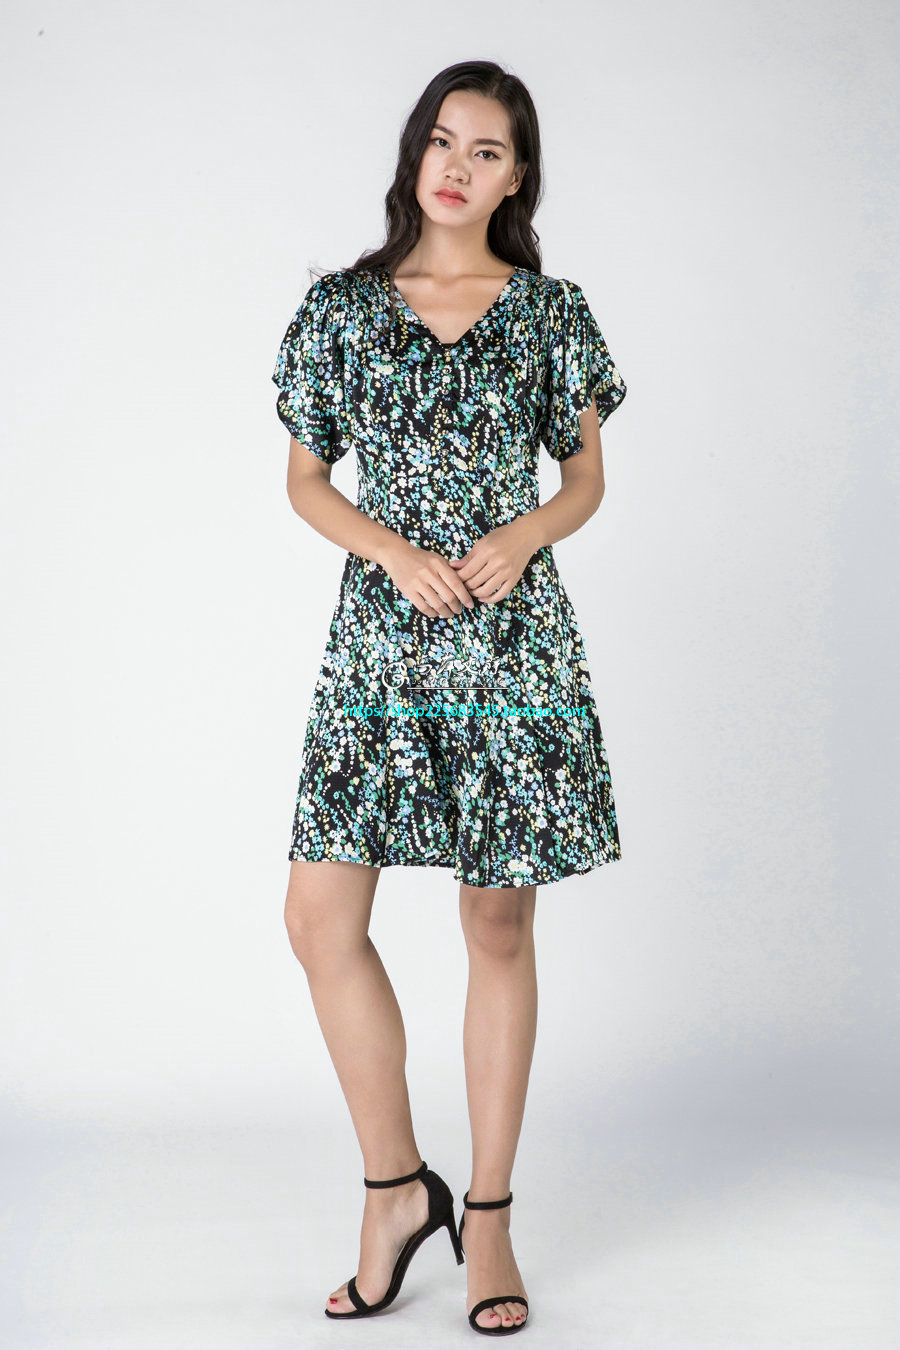 Gaoping  Wenqiong G1633 patern printed silk short sleeve women dress